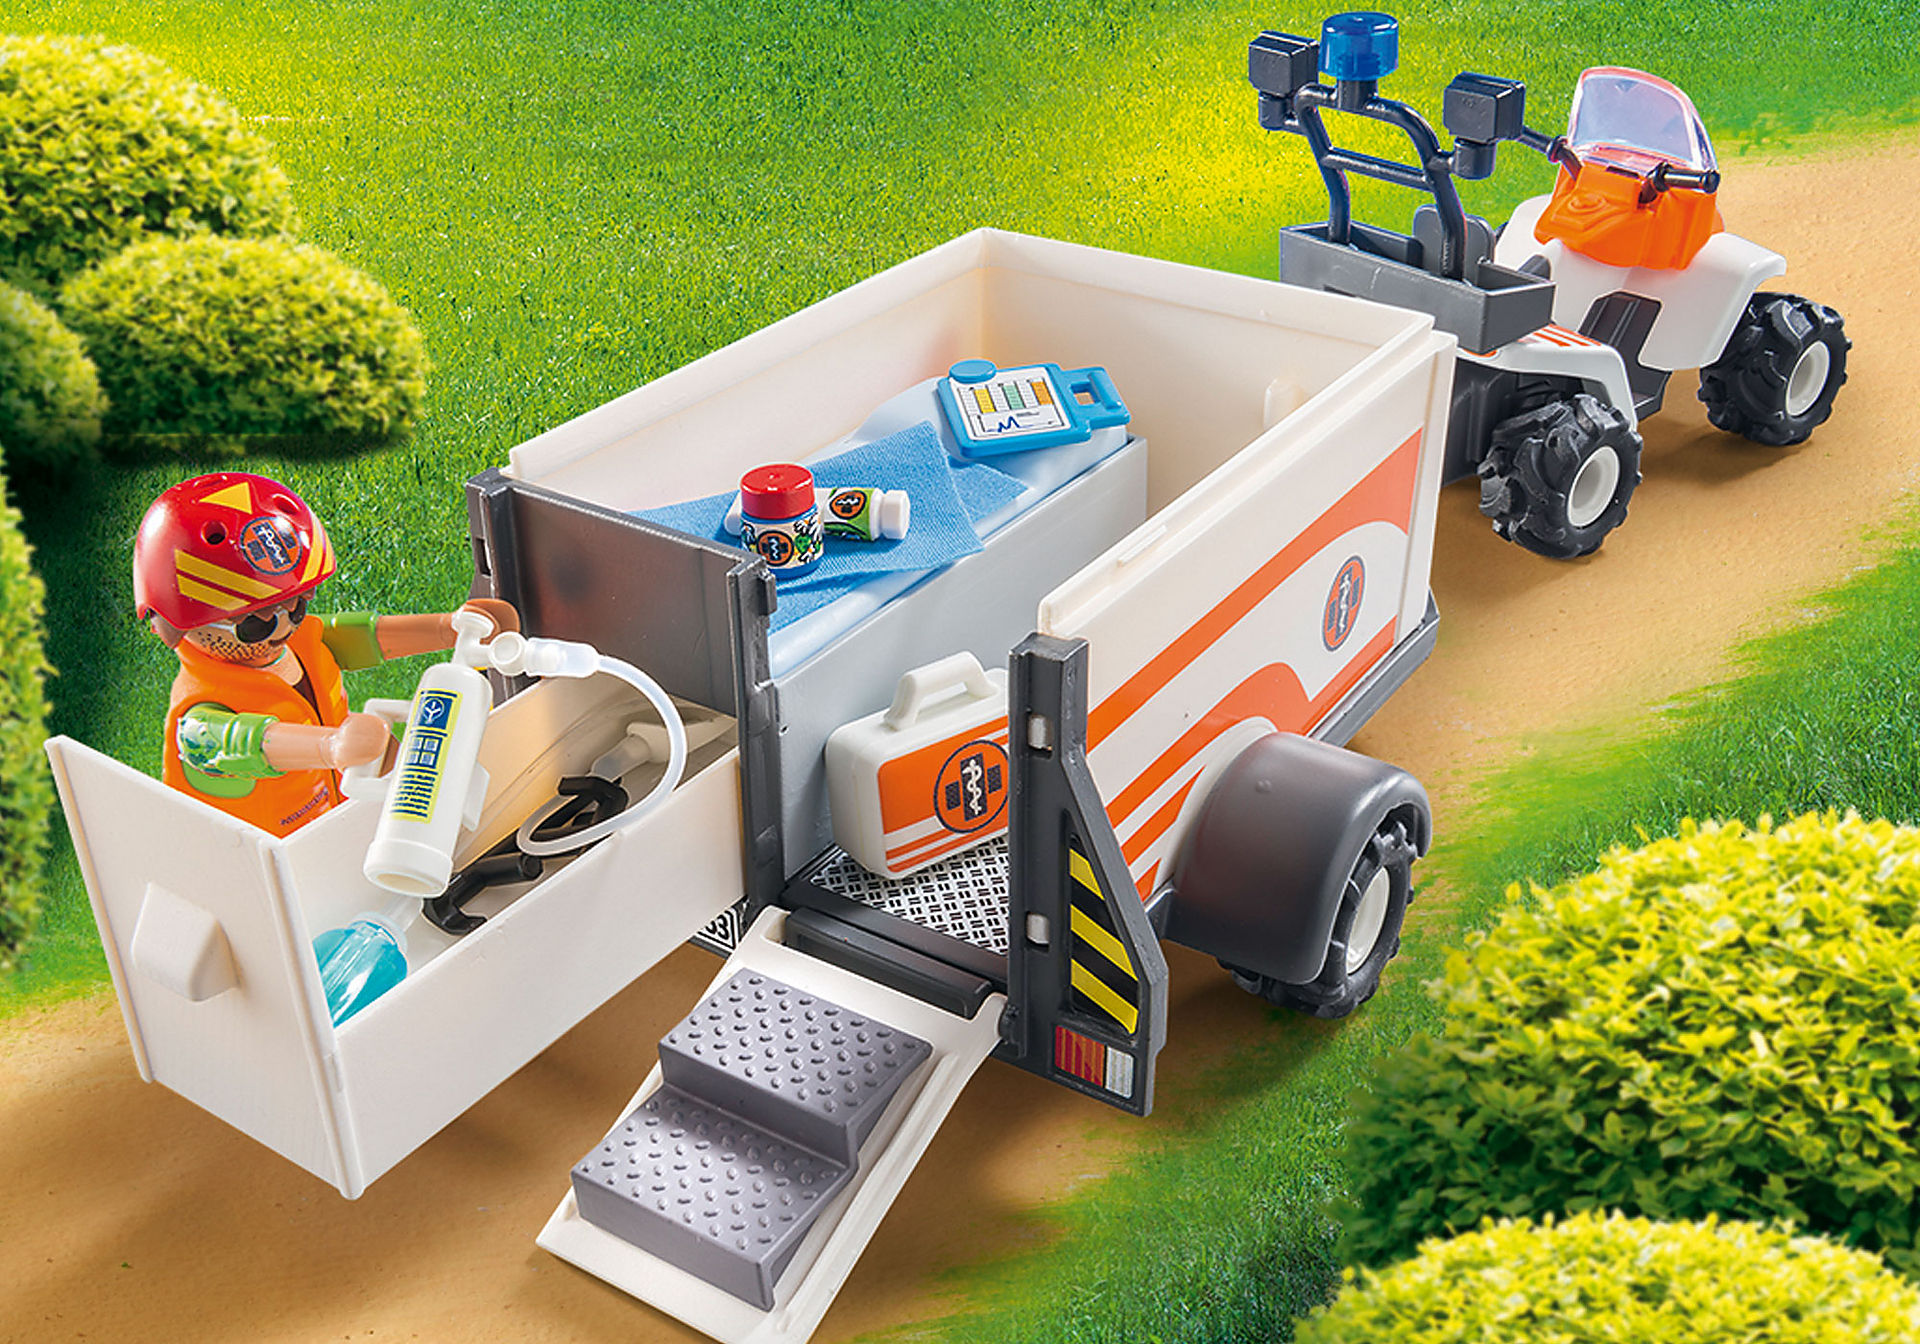 http://media.playmobil.com/i/playmobil/70053_product_extra1/Eerste hulp quad met trailer